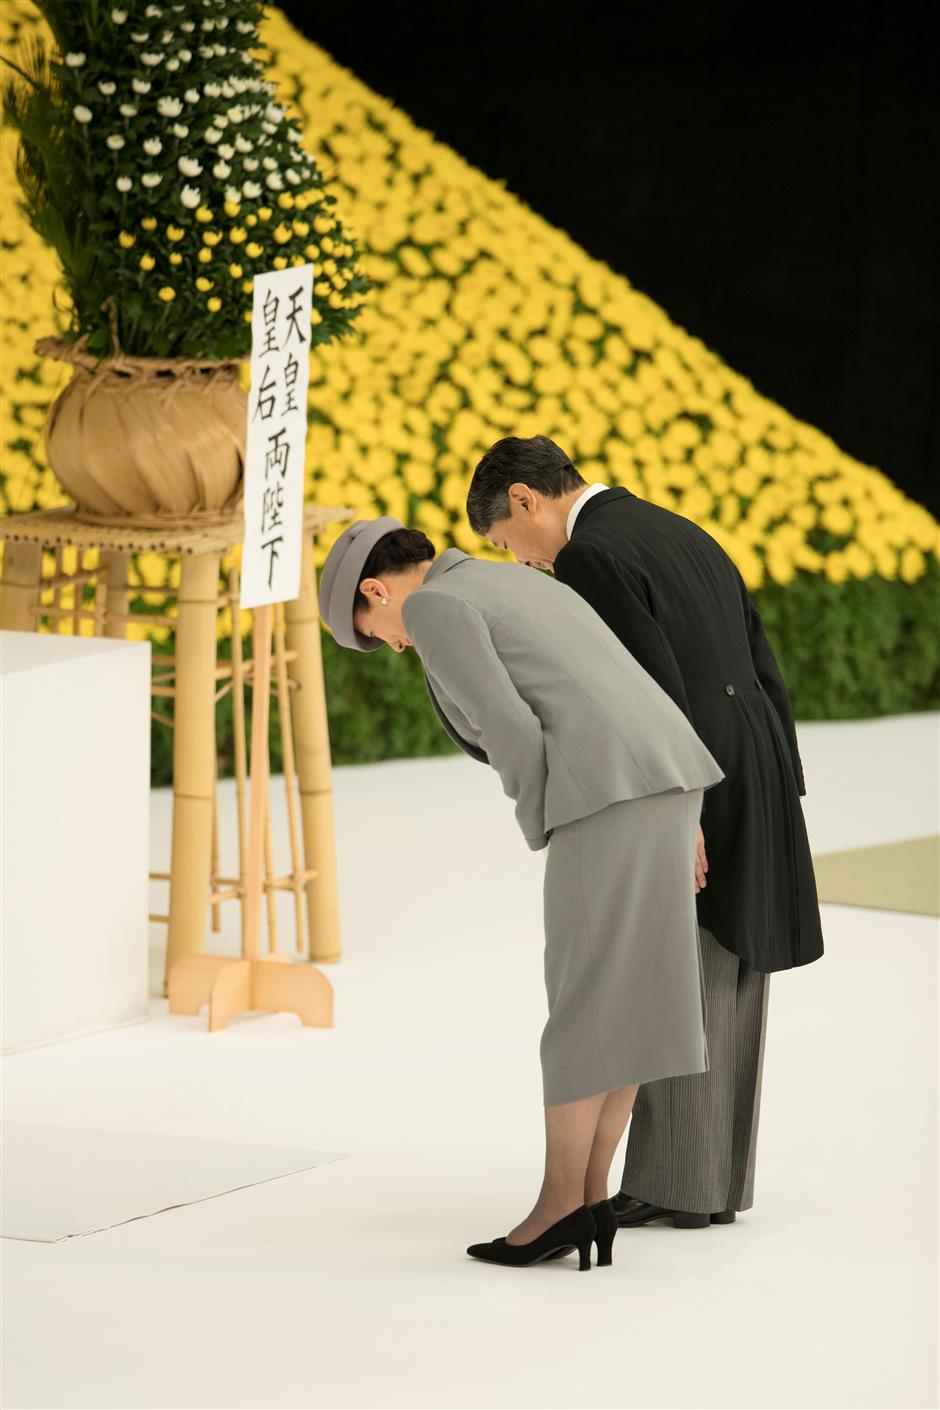 Japan's new Emperor expresses 'deep remorse' over Japan's wartime acts on anniversary of WWII surrender